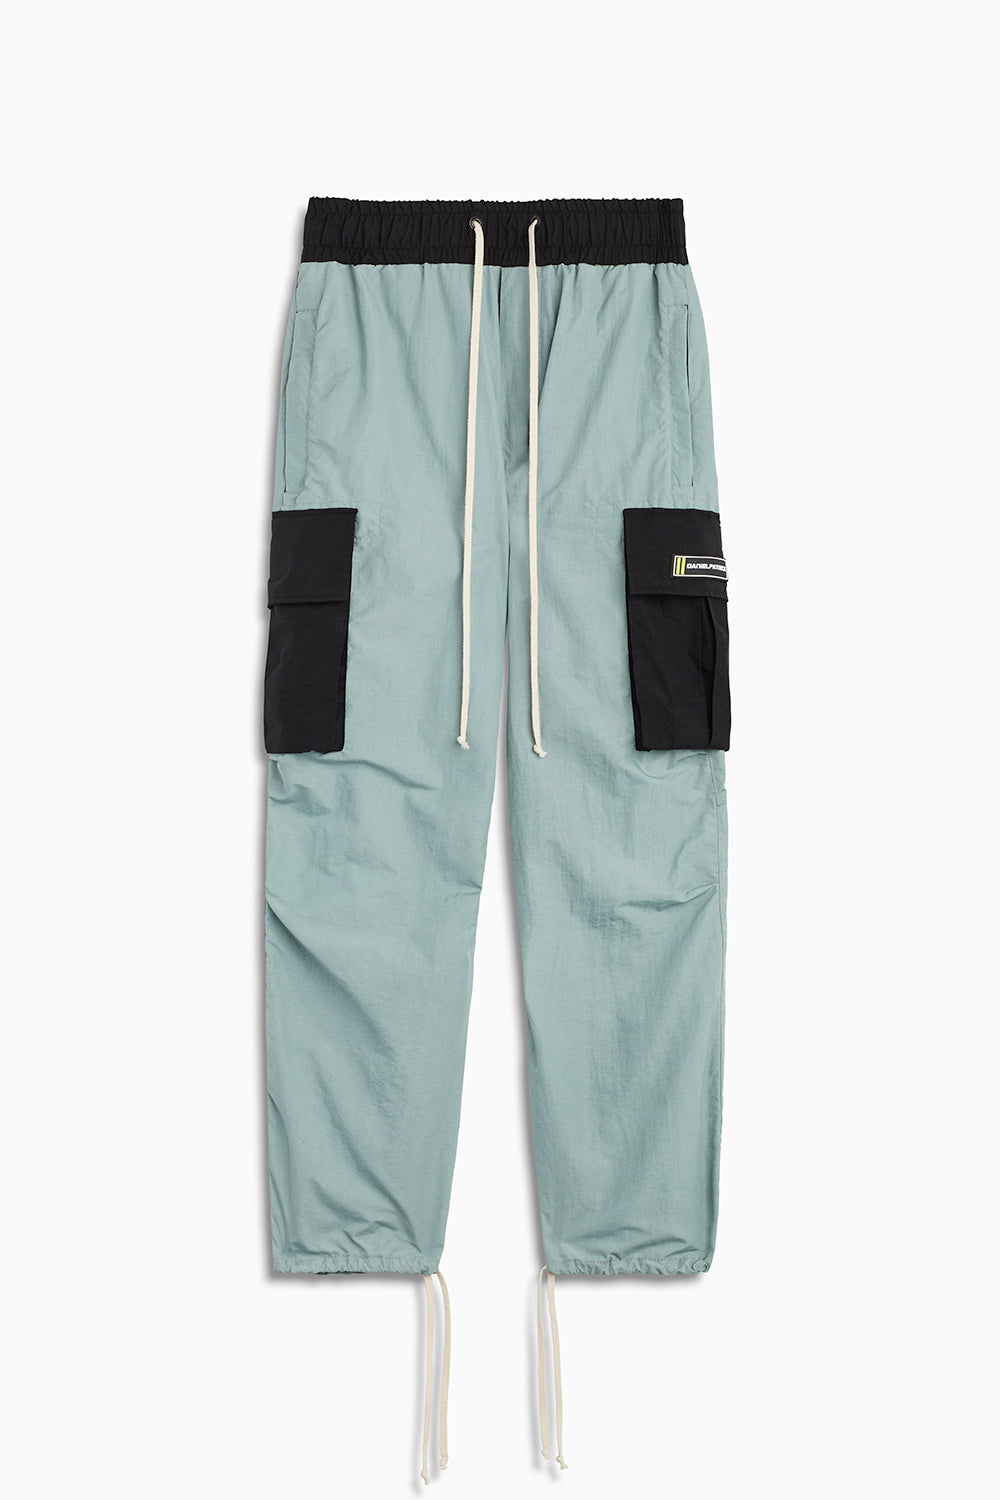 M93 cargo pants in sea foam/black by daniel patrick